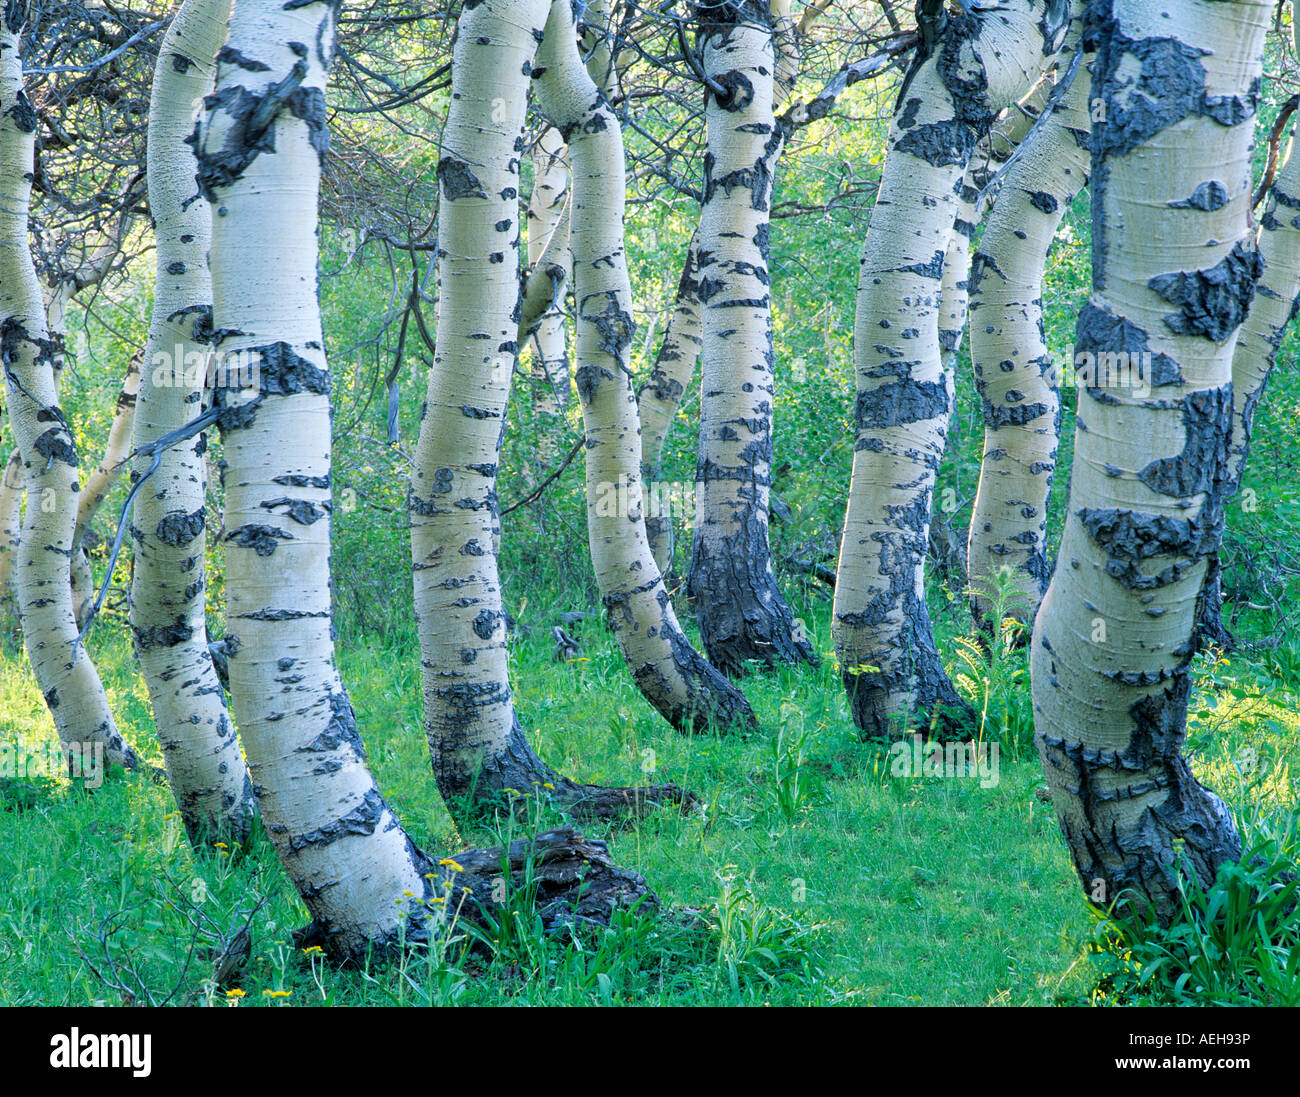 Twisted Aspen trunks in Steens Mountain Oregon - Stock Image